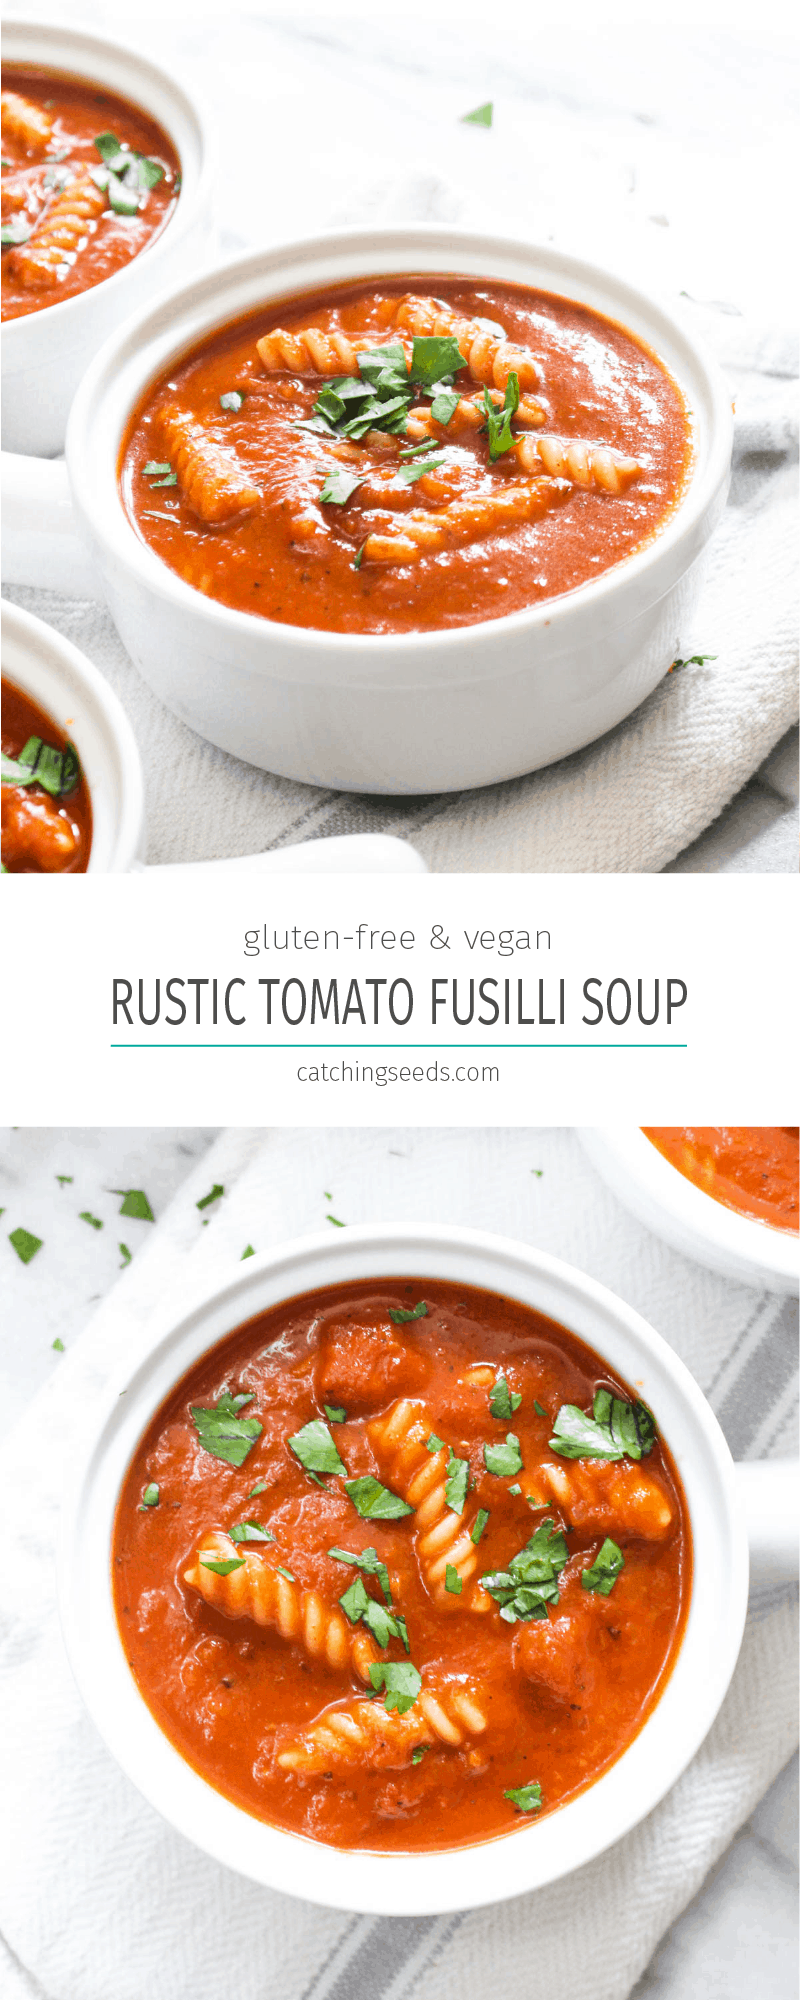 Rustic Tomato Fusilli Soup is a simple dinner recipe that uses pantry items to make a gourmet one pot meal! This healthy recipe is gluten and dairy free. | CatchingSeeds.com